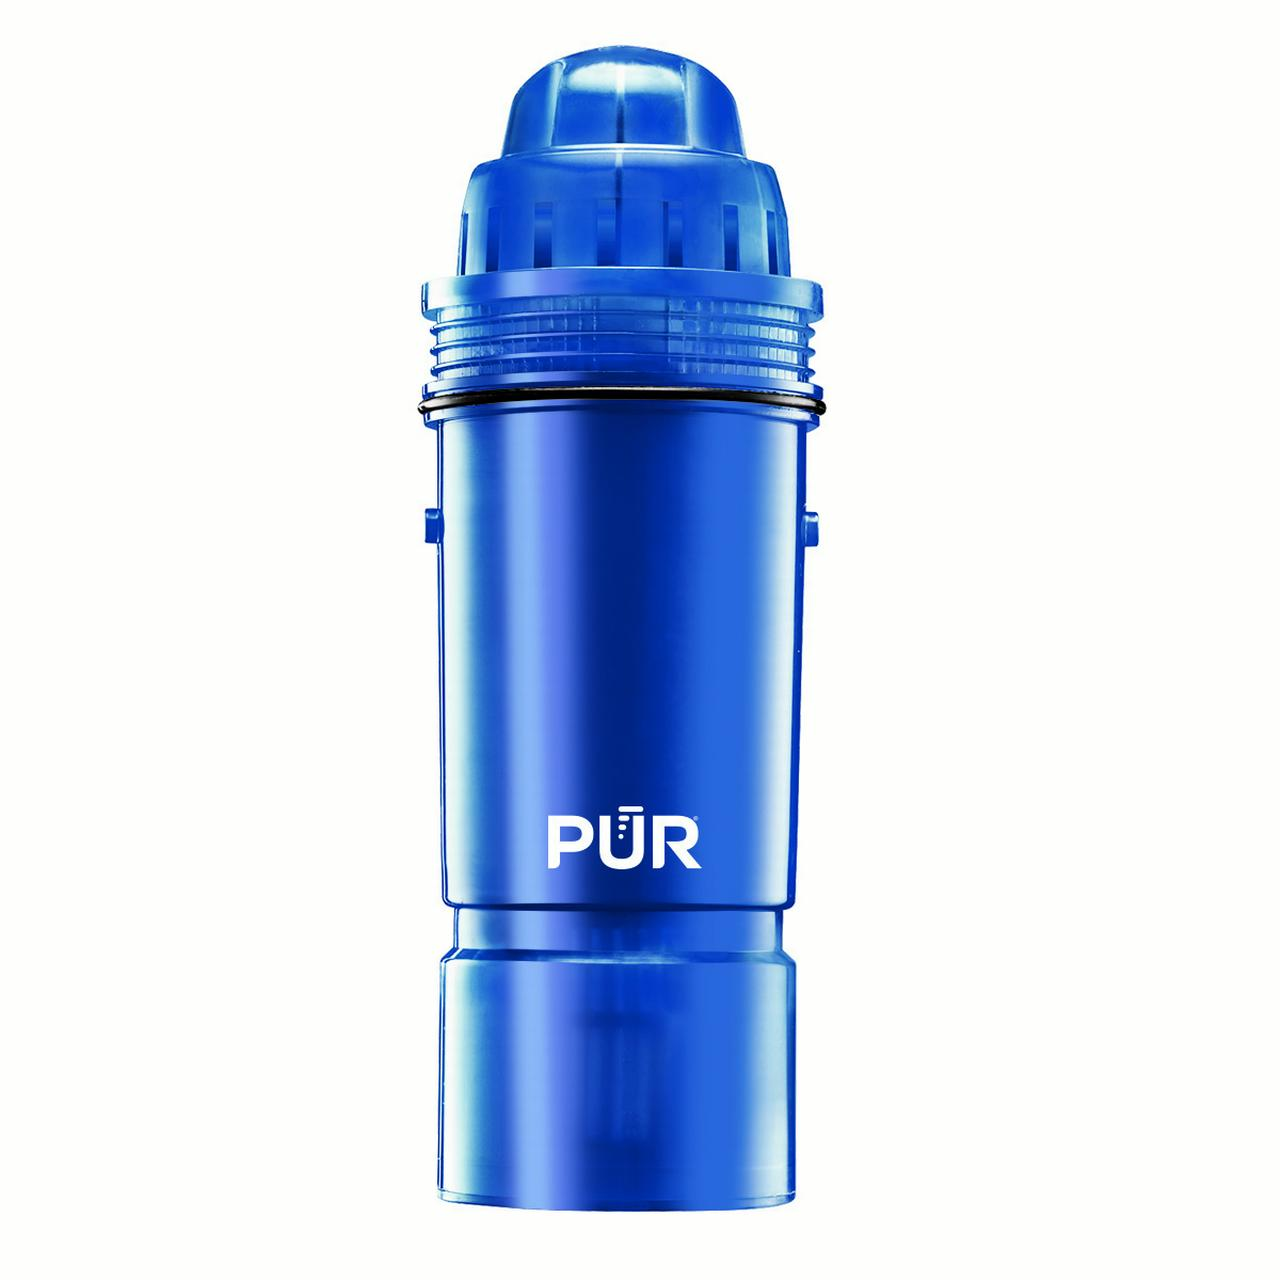 pur pitcher replacement water filter 2 pack